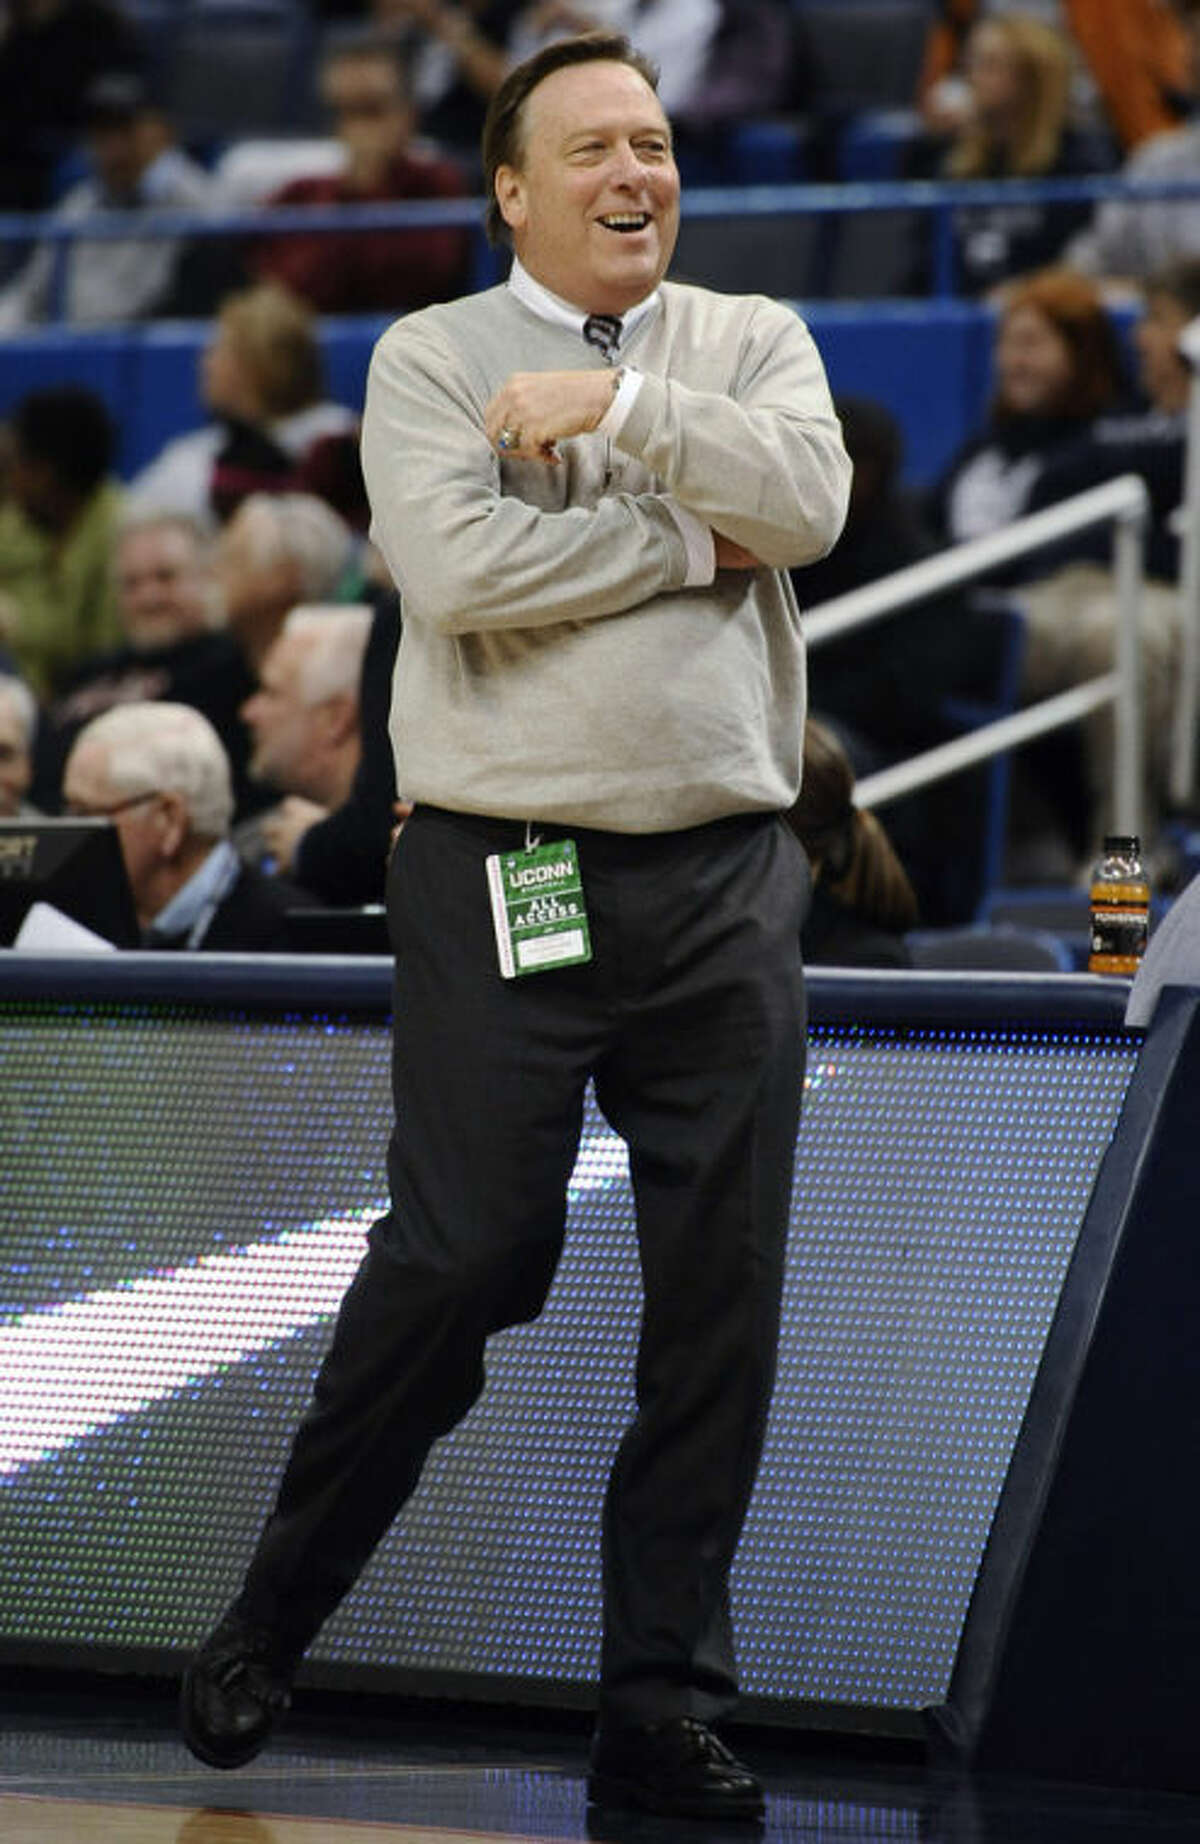 Philadelphia coach Tom Shirley smiles during the first half of an NCAA college exhibition basketball game against Connecticut, Tuesday, Nov. 5, 2013, in Hartford, Conn. (AP Photo/Jessica Hill)